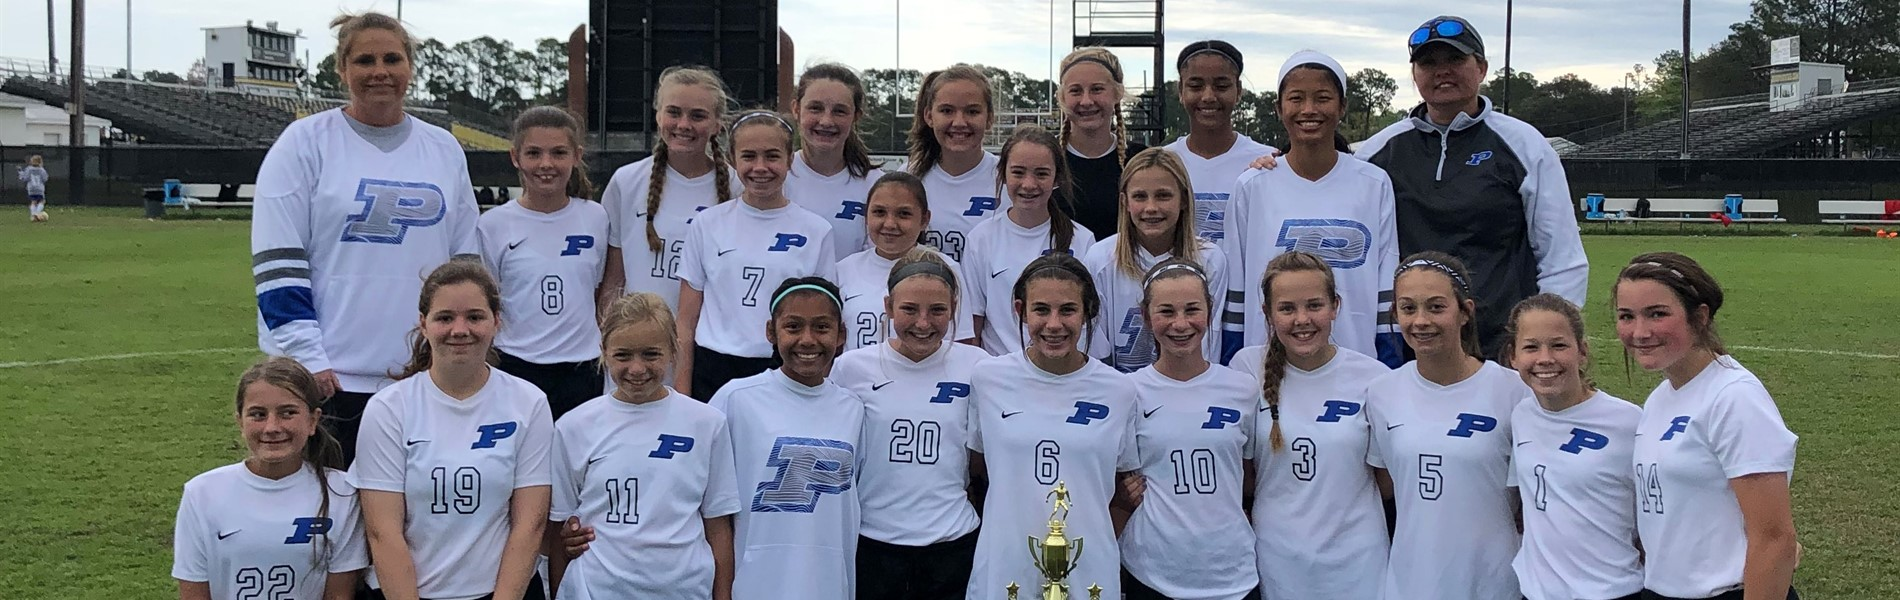 2018-2019 Girls Soccer Conference CHAMPS